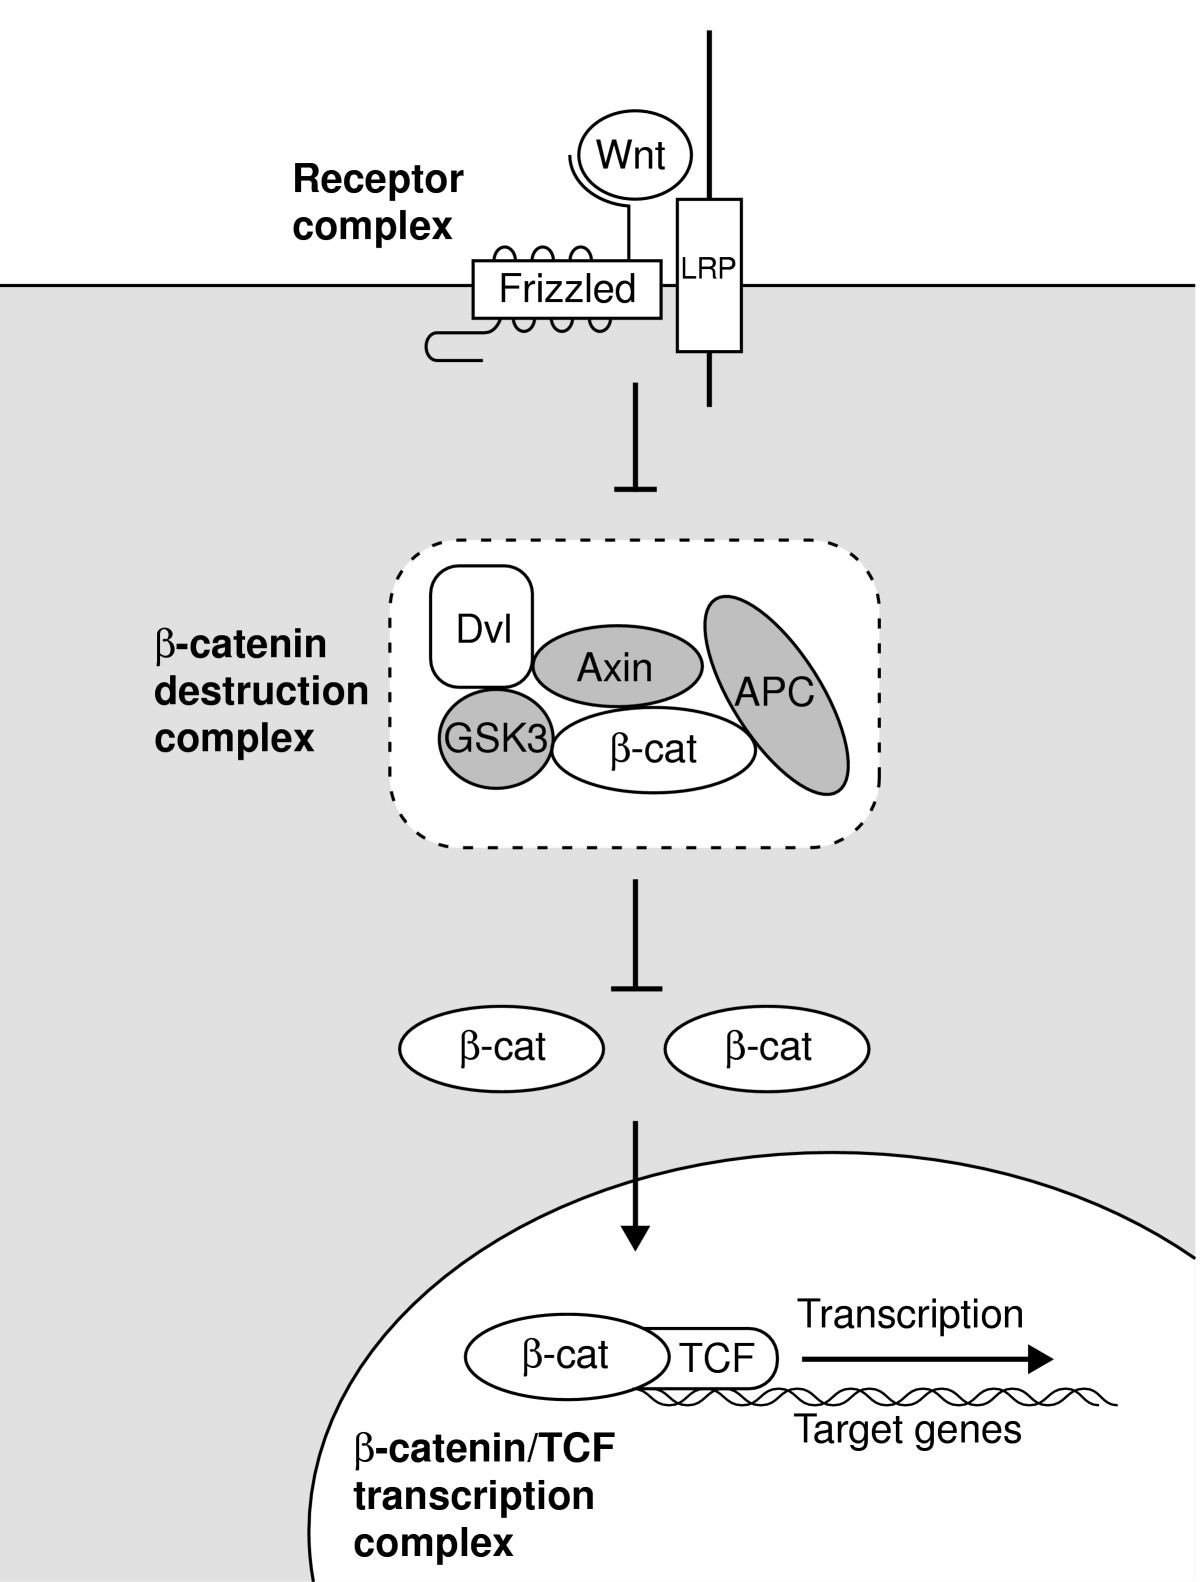 http://static-content.springer.com/image/art%3A10.1186%2Fgb-2005-6-9-231/MediaObjects/13059_2005_Article_975_Fig1_HTML.jpg